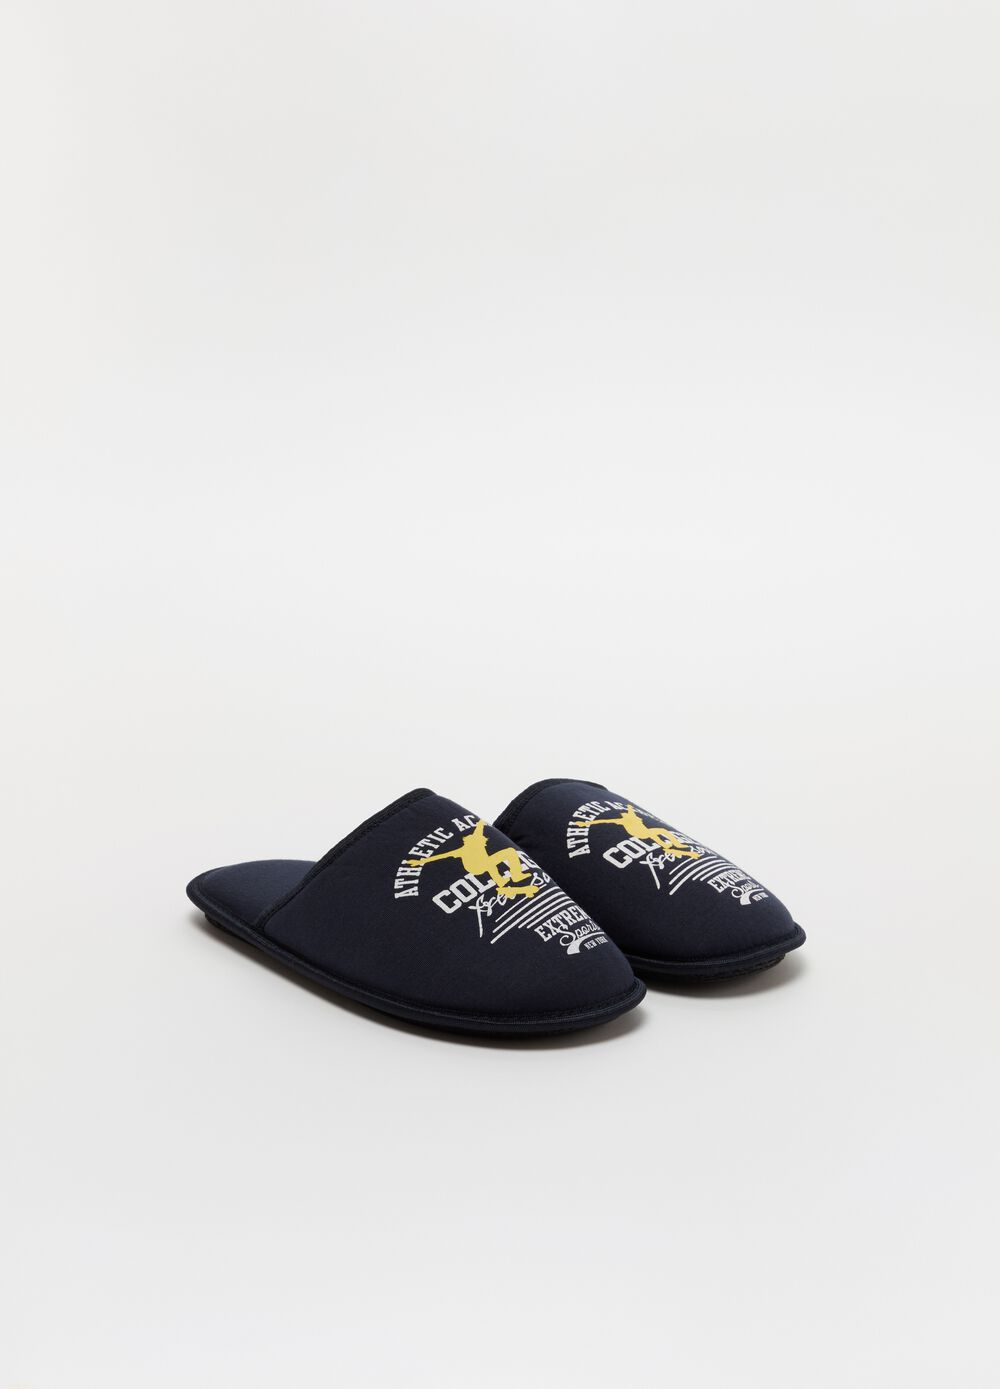 Slippers with lettering and skater print